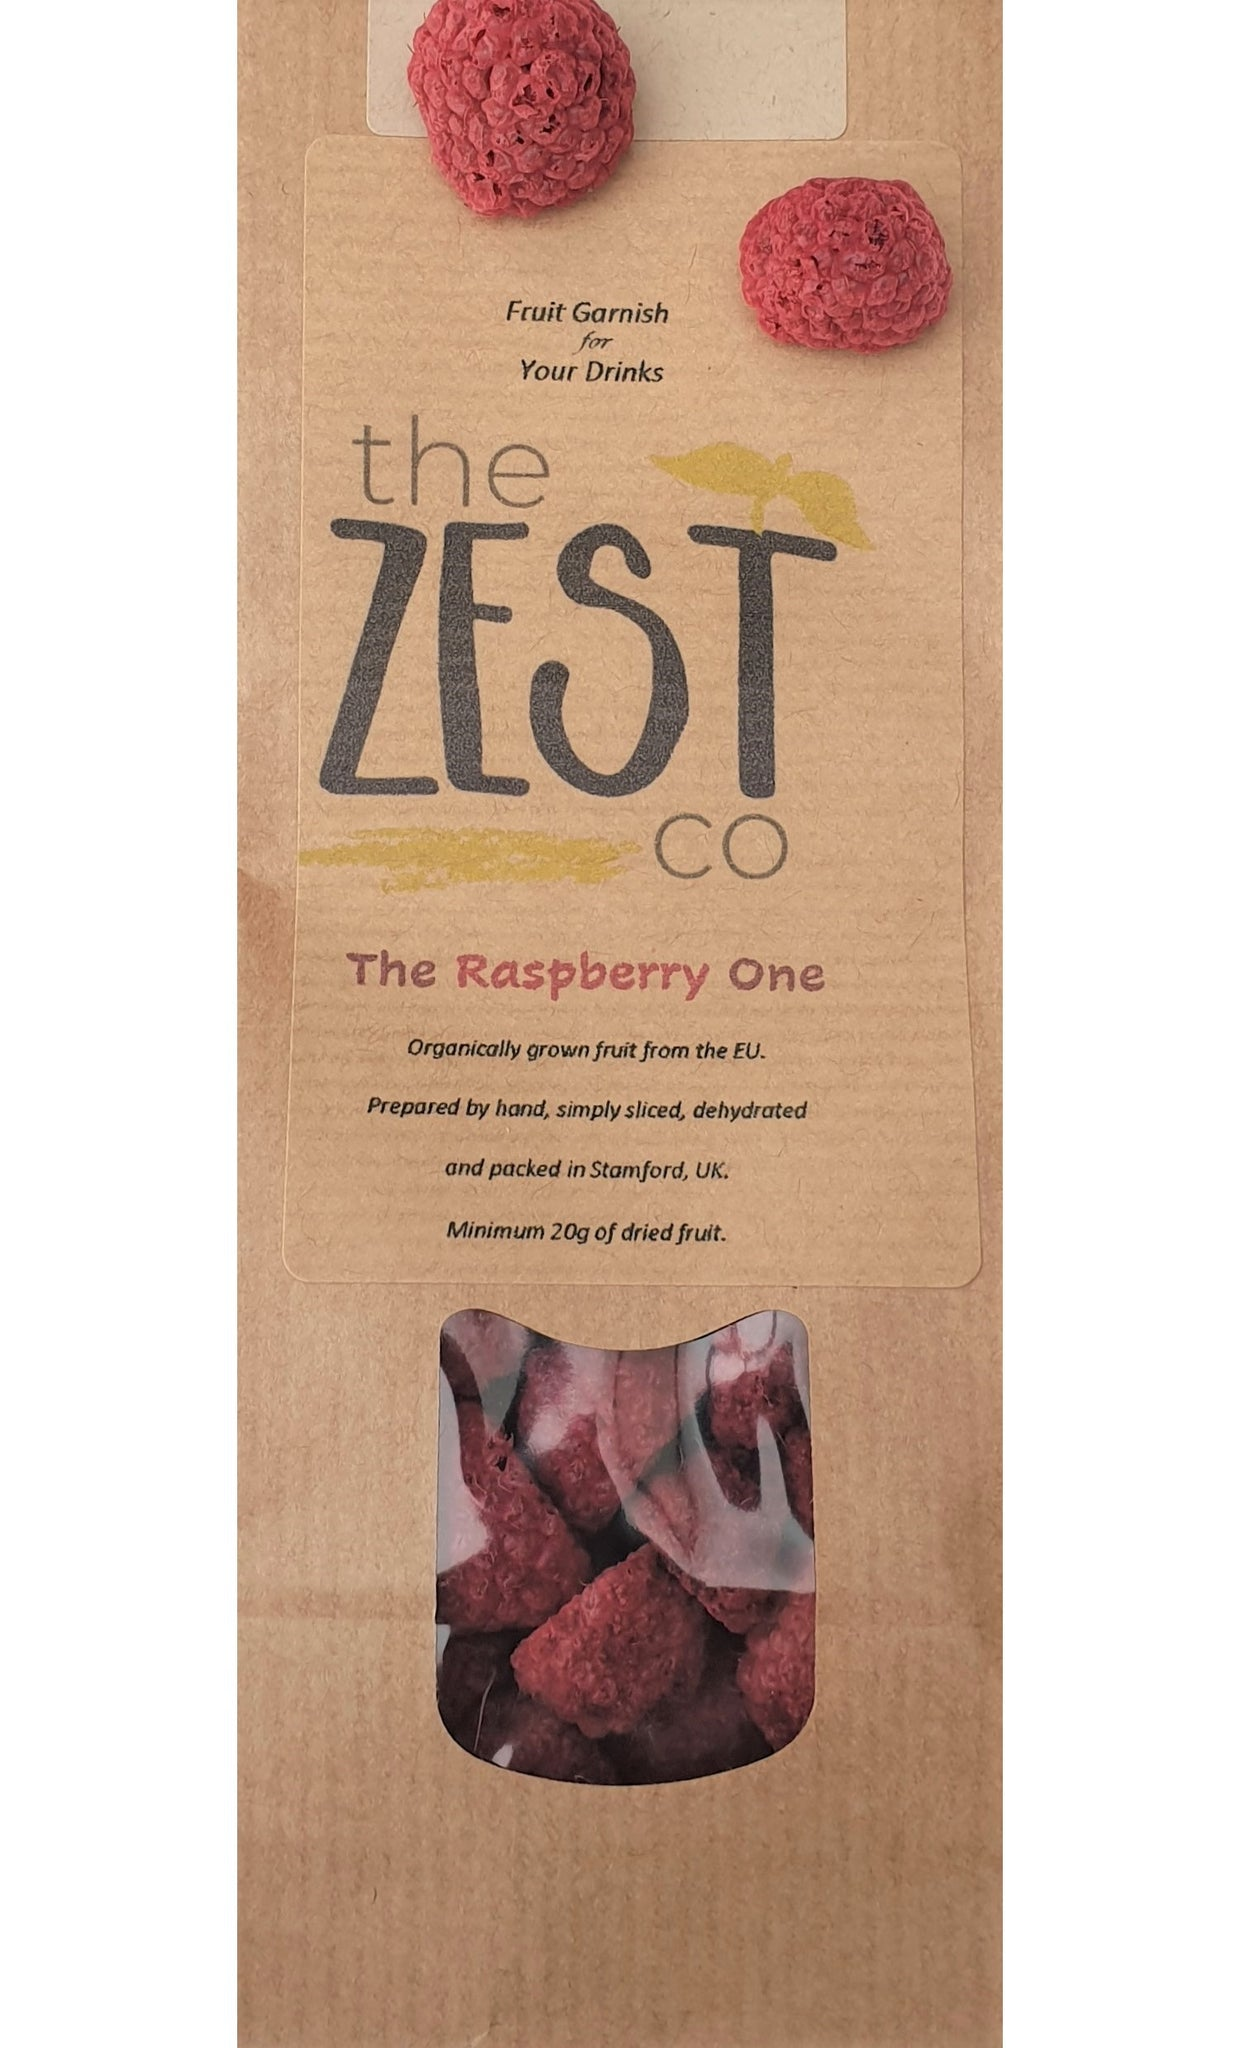 The Zest Co. The Raspberry One